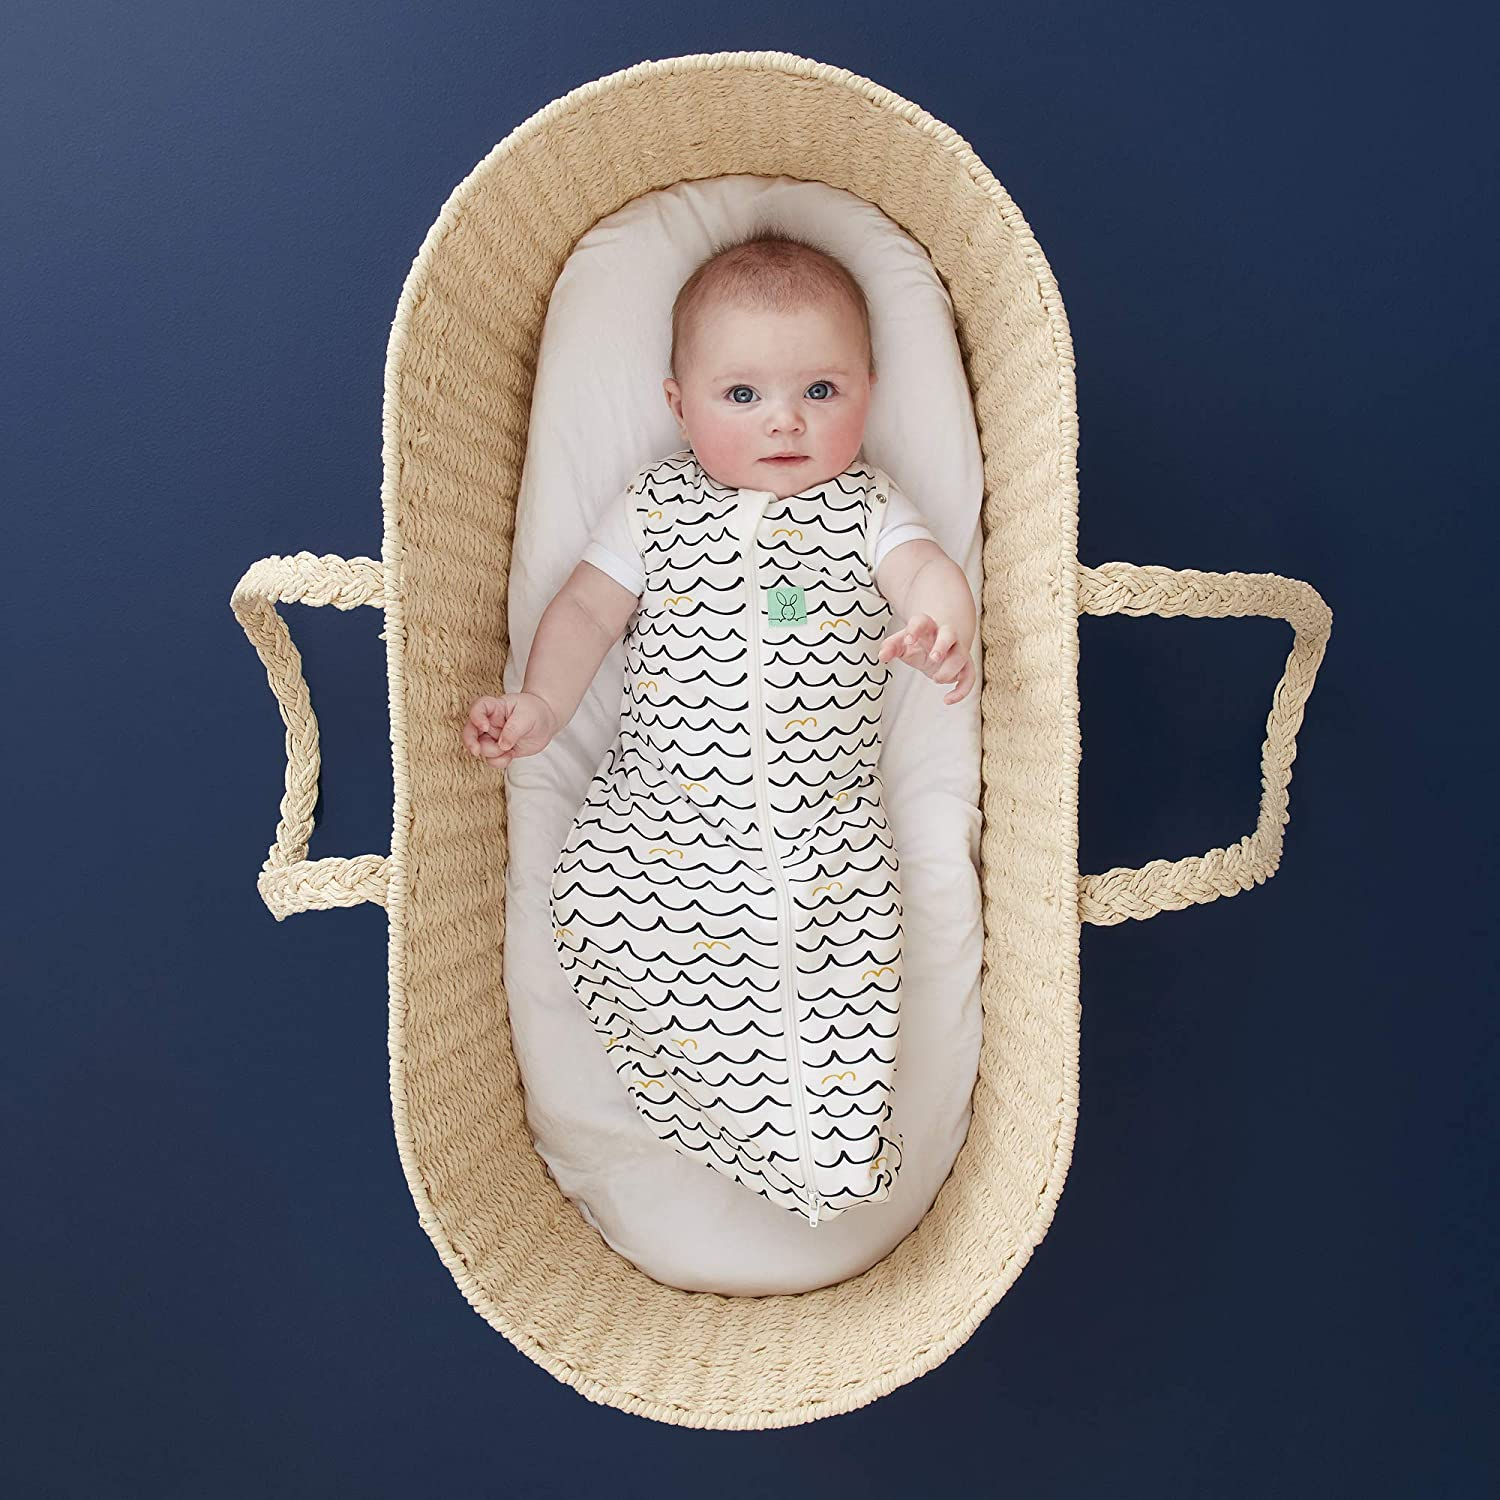 0.2tog Waves ErgoPouch Bamboo Swaddle Bag 3-12M